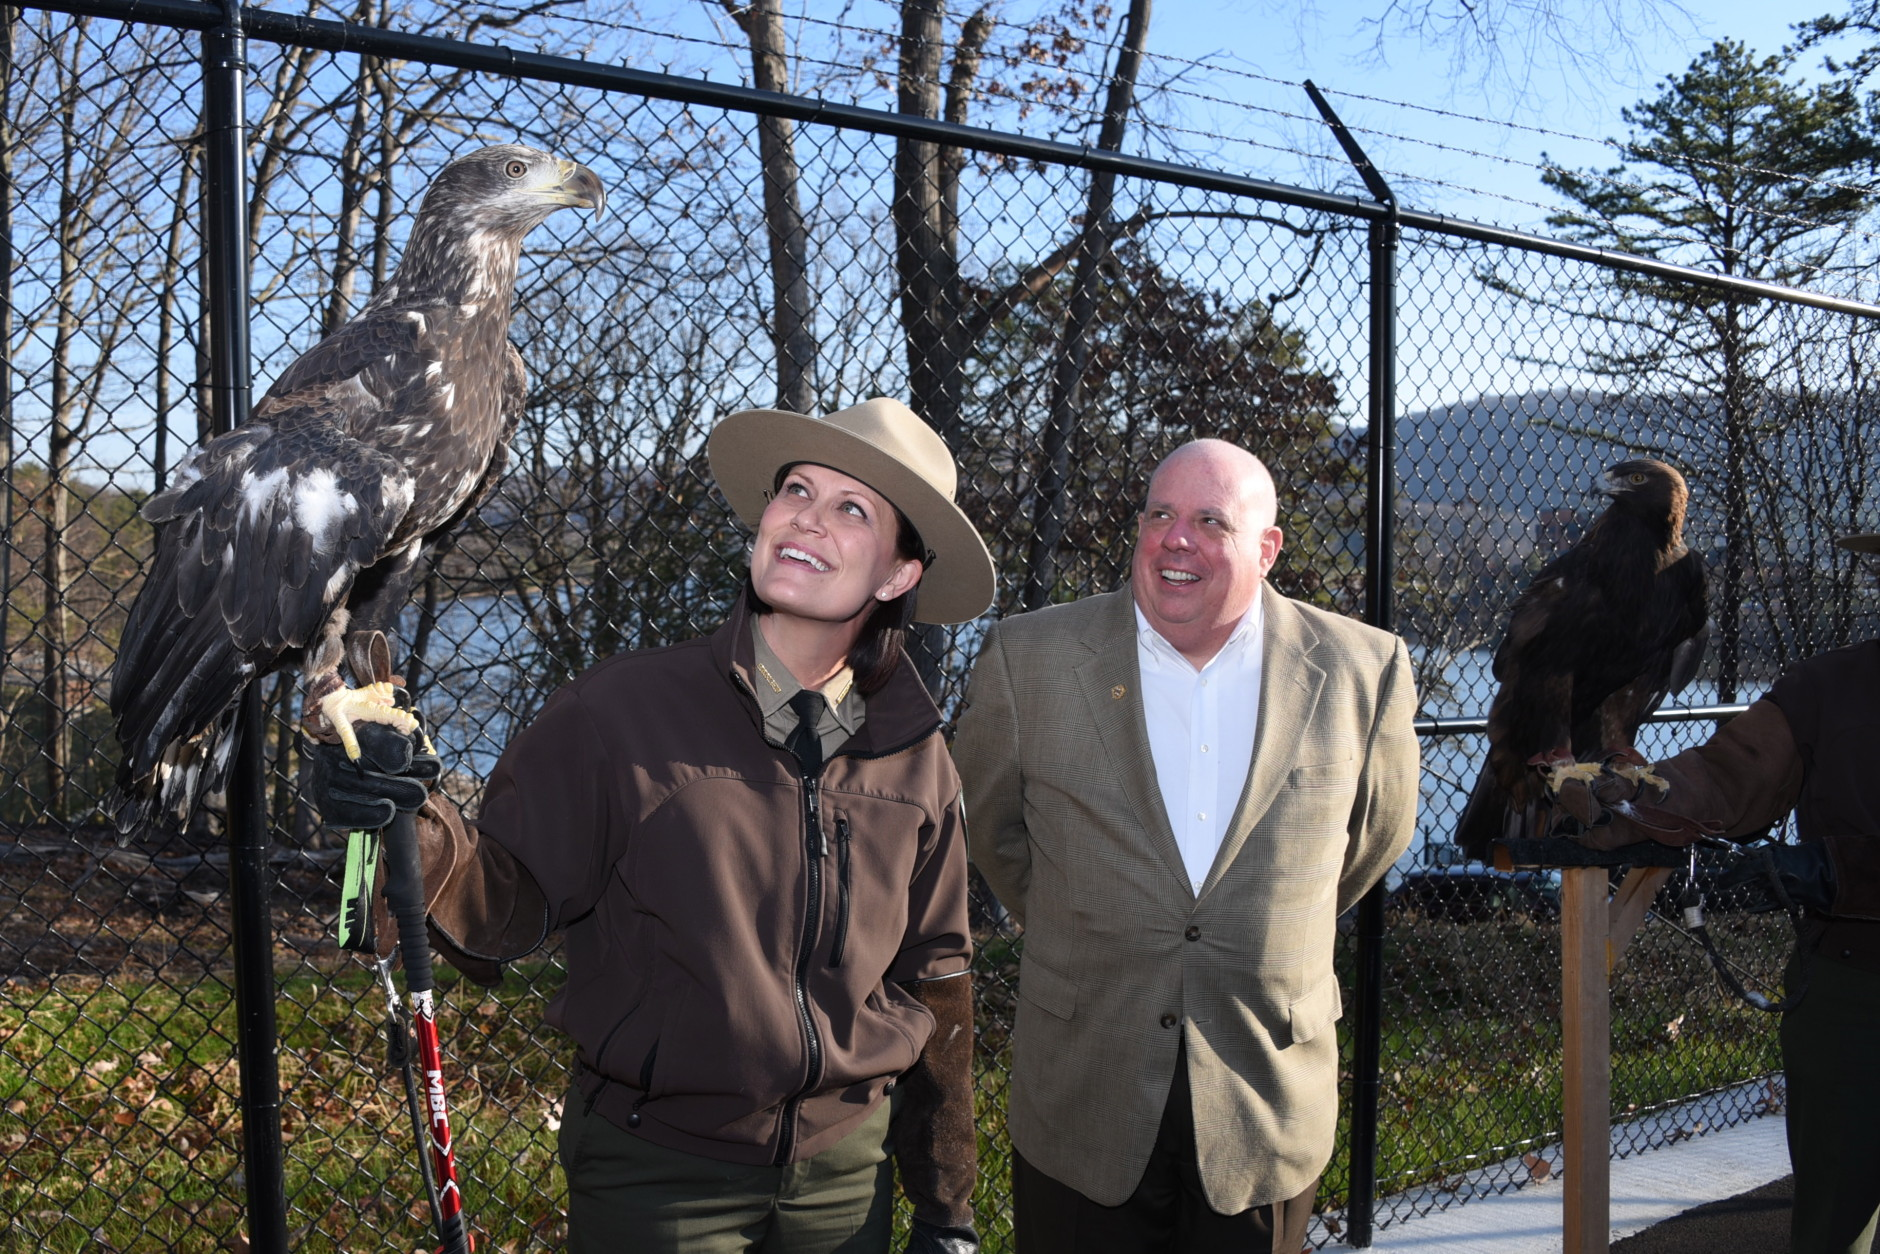 Ranger Sarah Milbourne, Mo the eagle, and Governor Hogan. (Courtesy Joe Andrucyk/Office of Gov. Hogan)